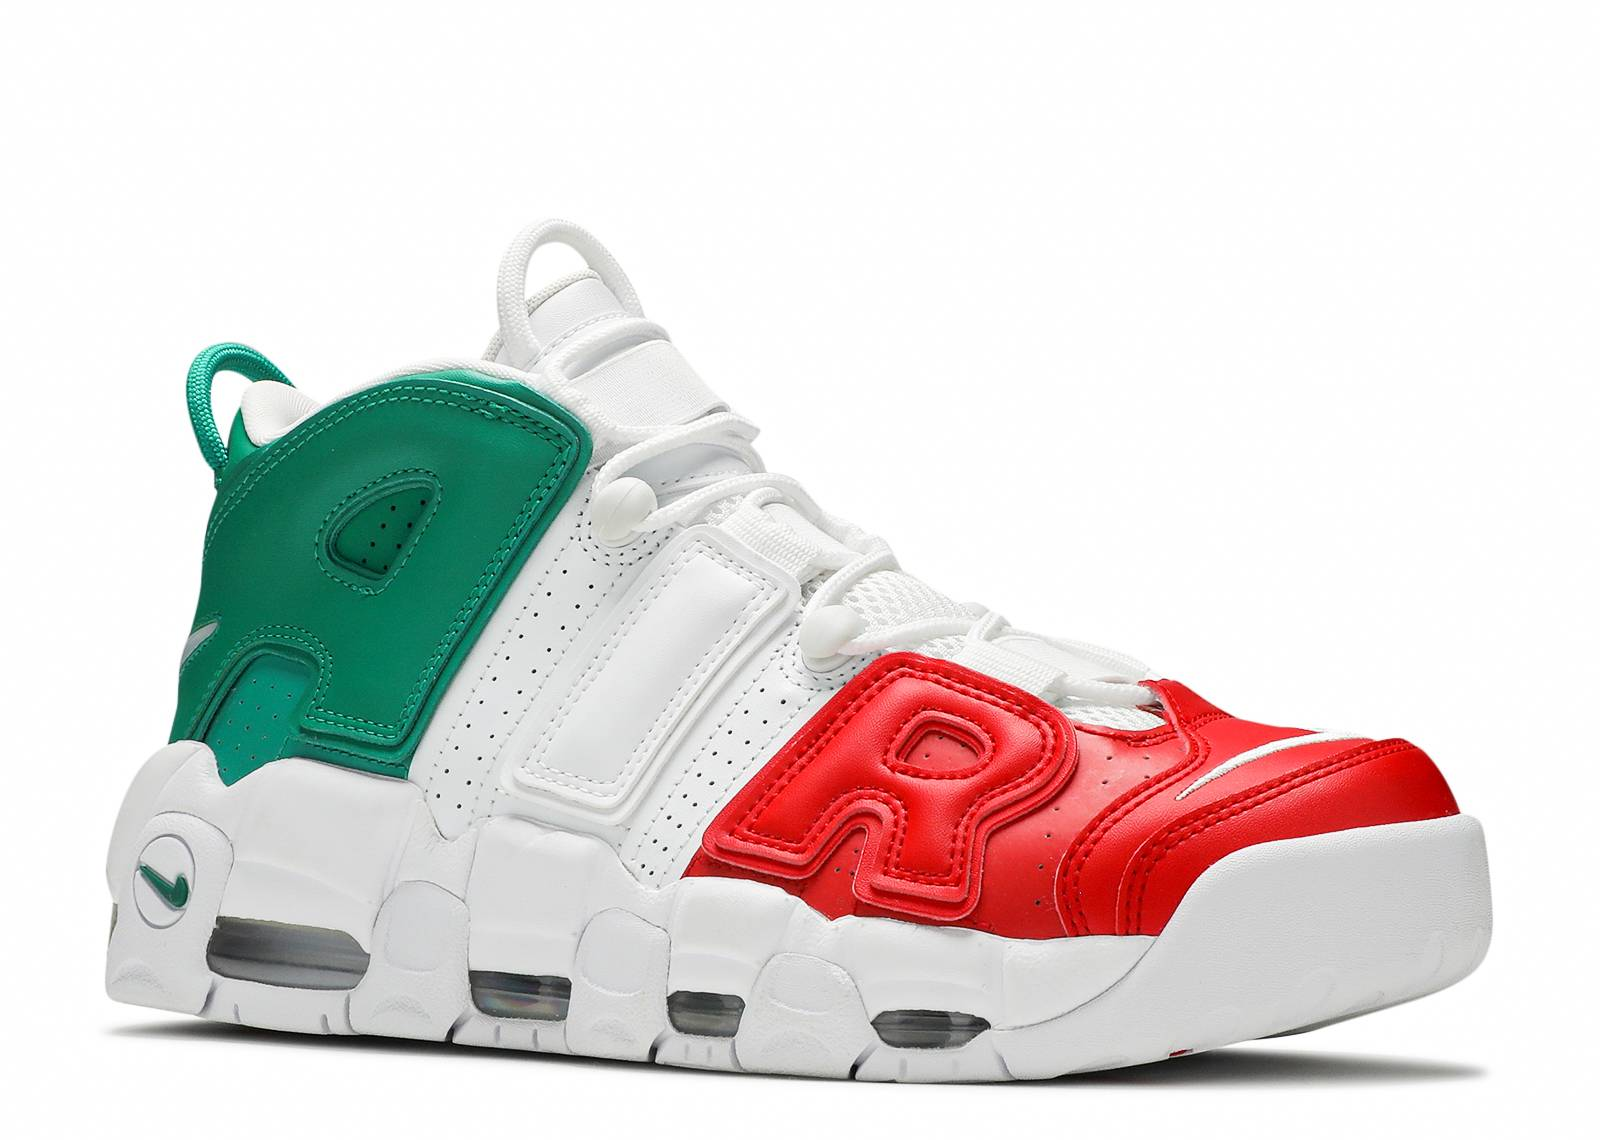 Air More Uptempo  96 Italy Qs - Nike - av3811 600 - university  red white-lucid green  8a8bd255b